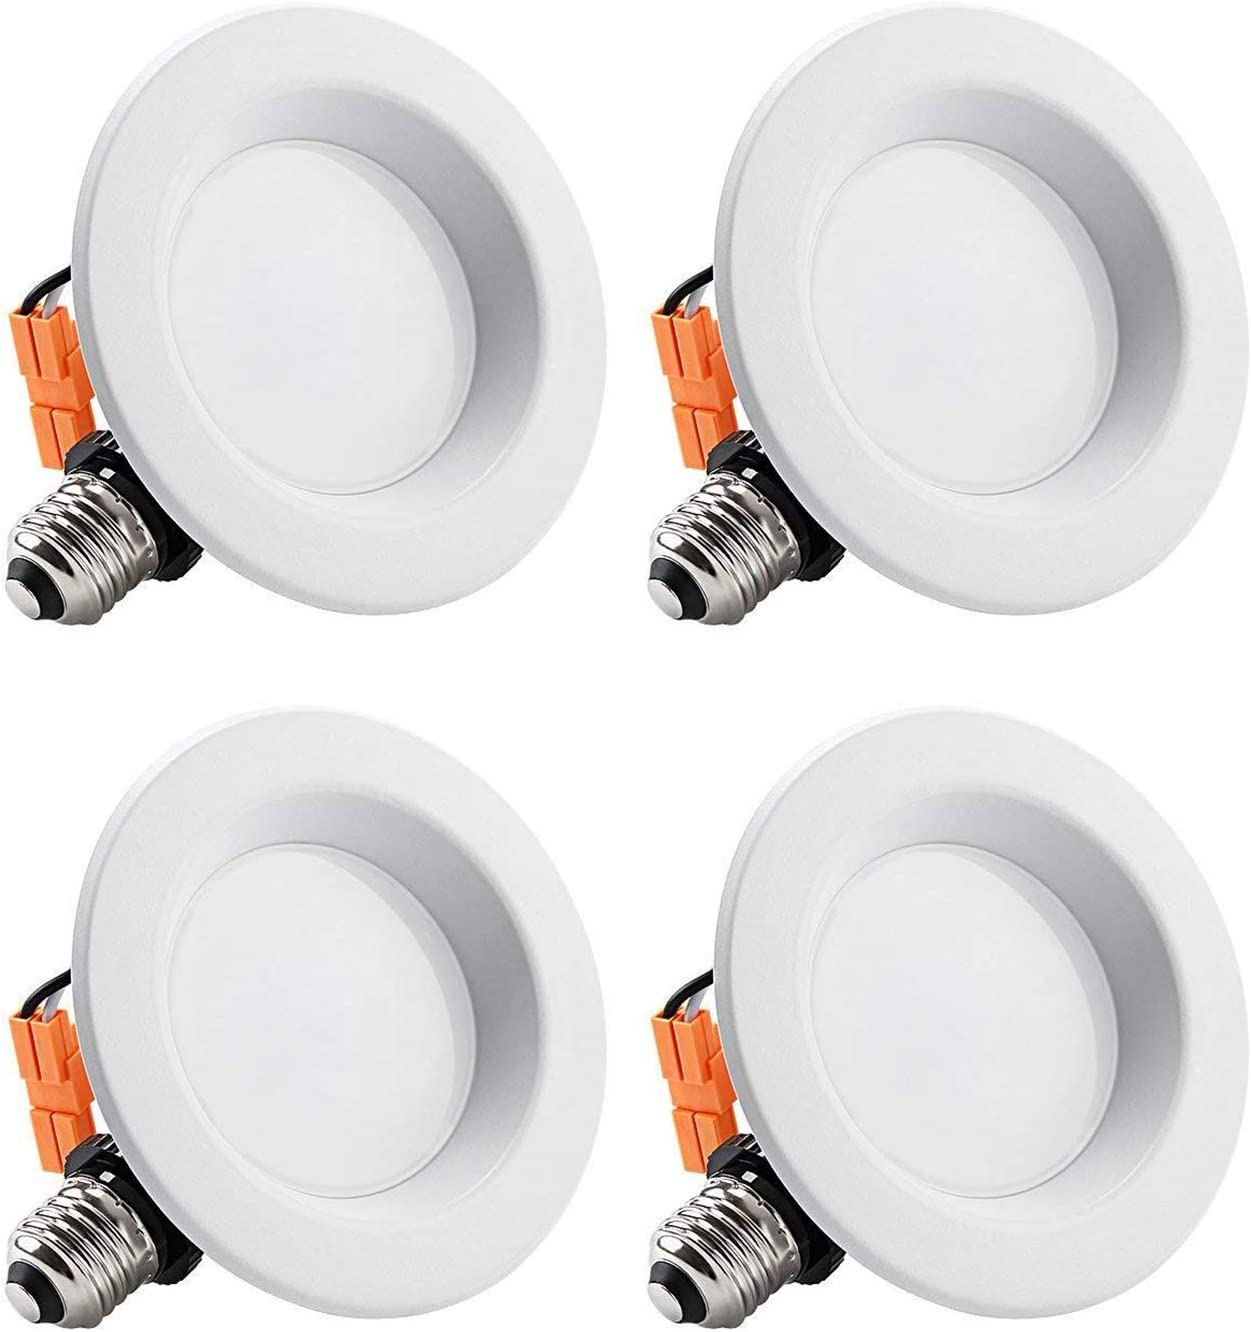 torchstar 4 inch dimmable led recessed lighting with smooth trim retrofit recessed downlight 10w 65w equiv cri 90 wet location etl listed